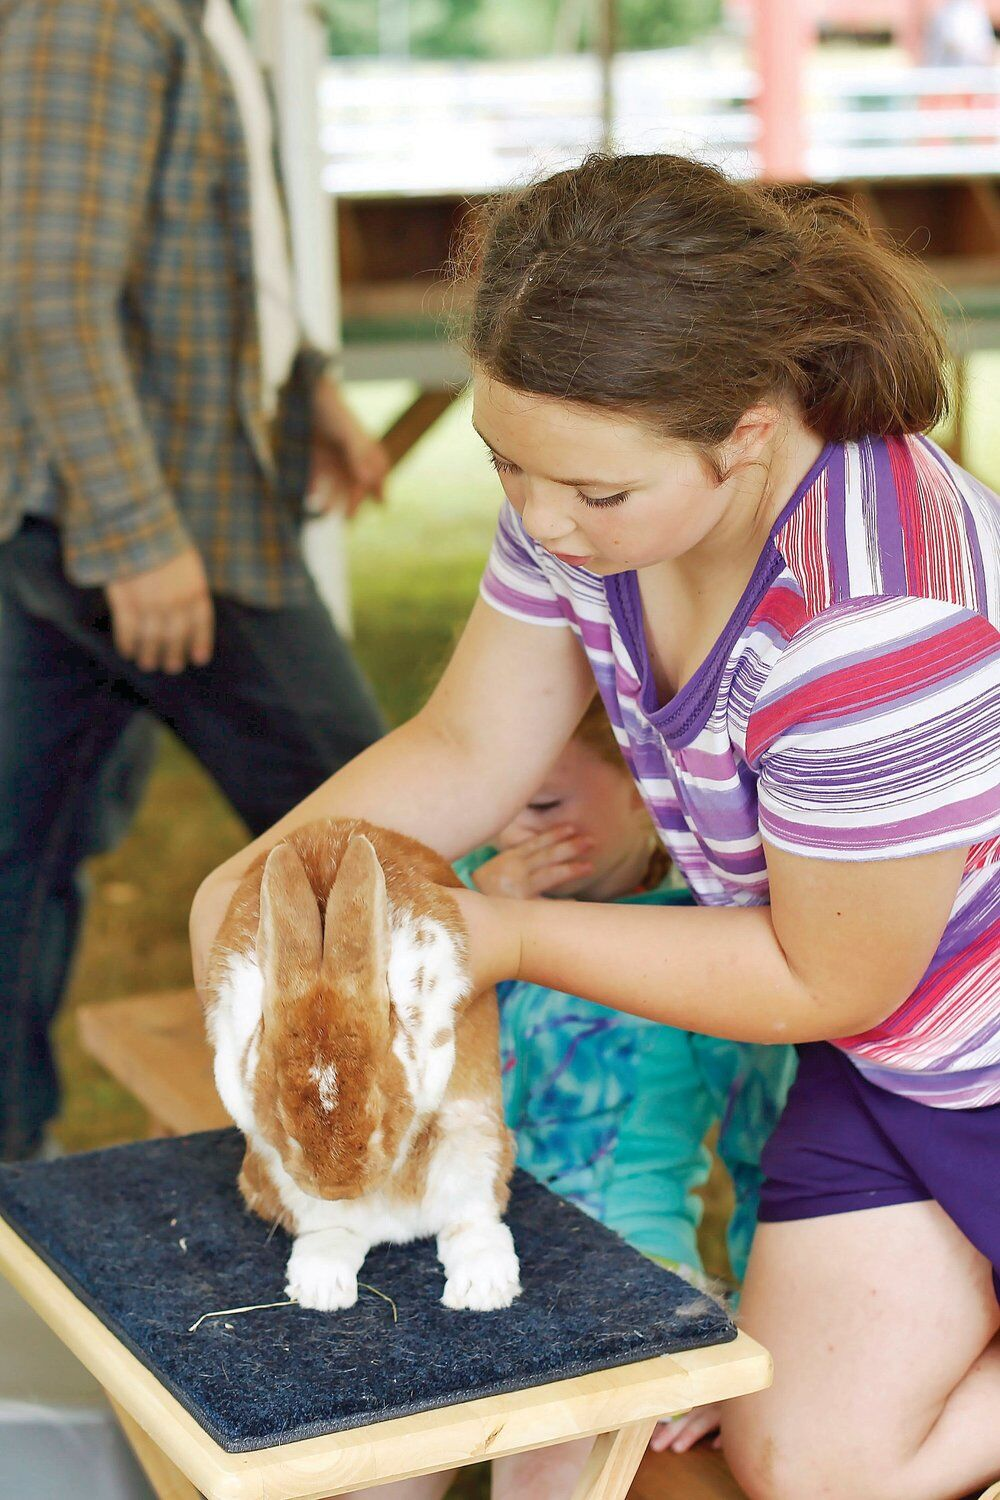 4-H Youth Fair: By kids for kids